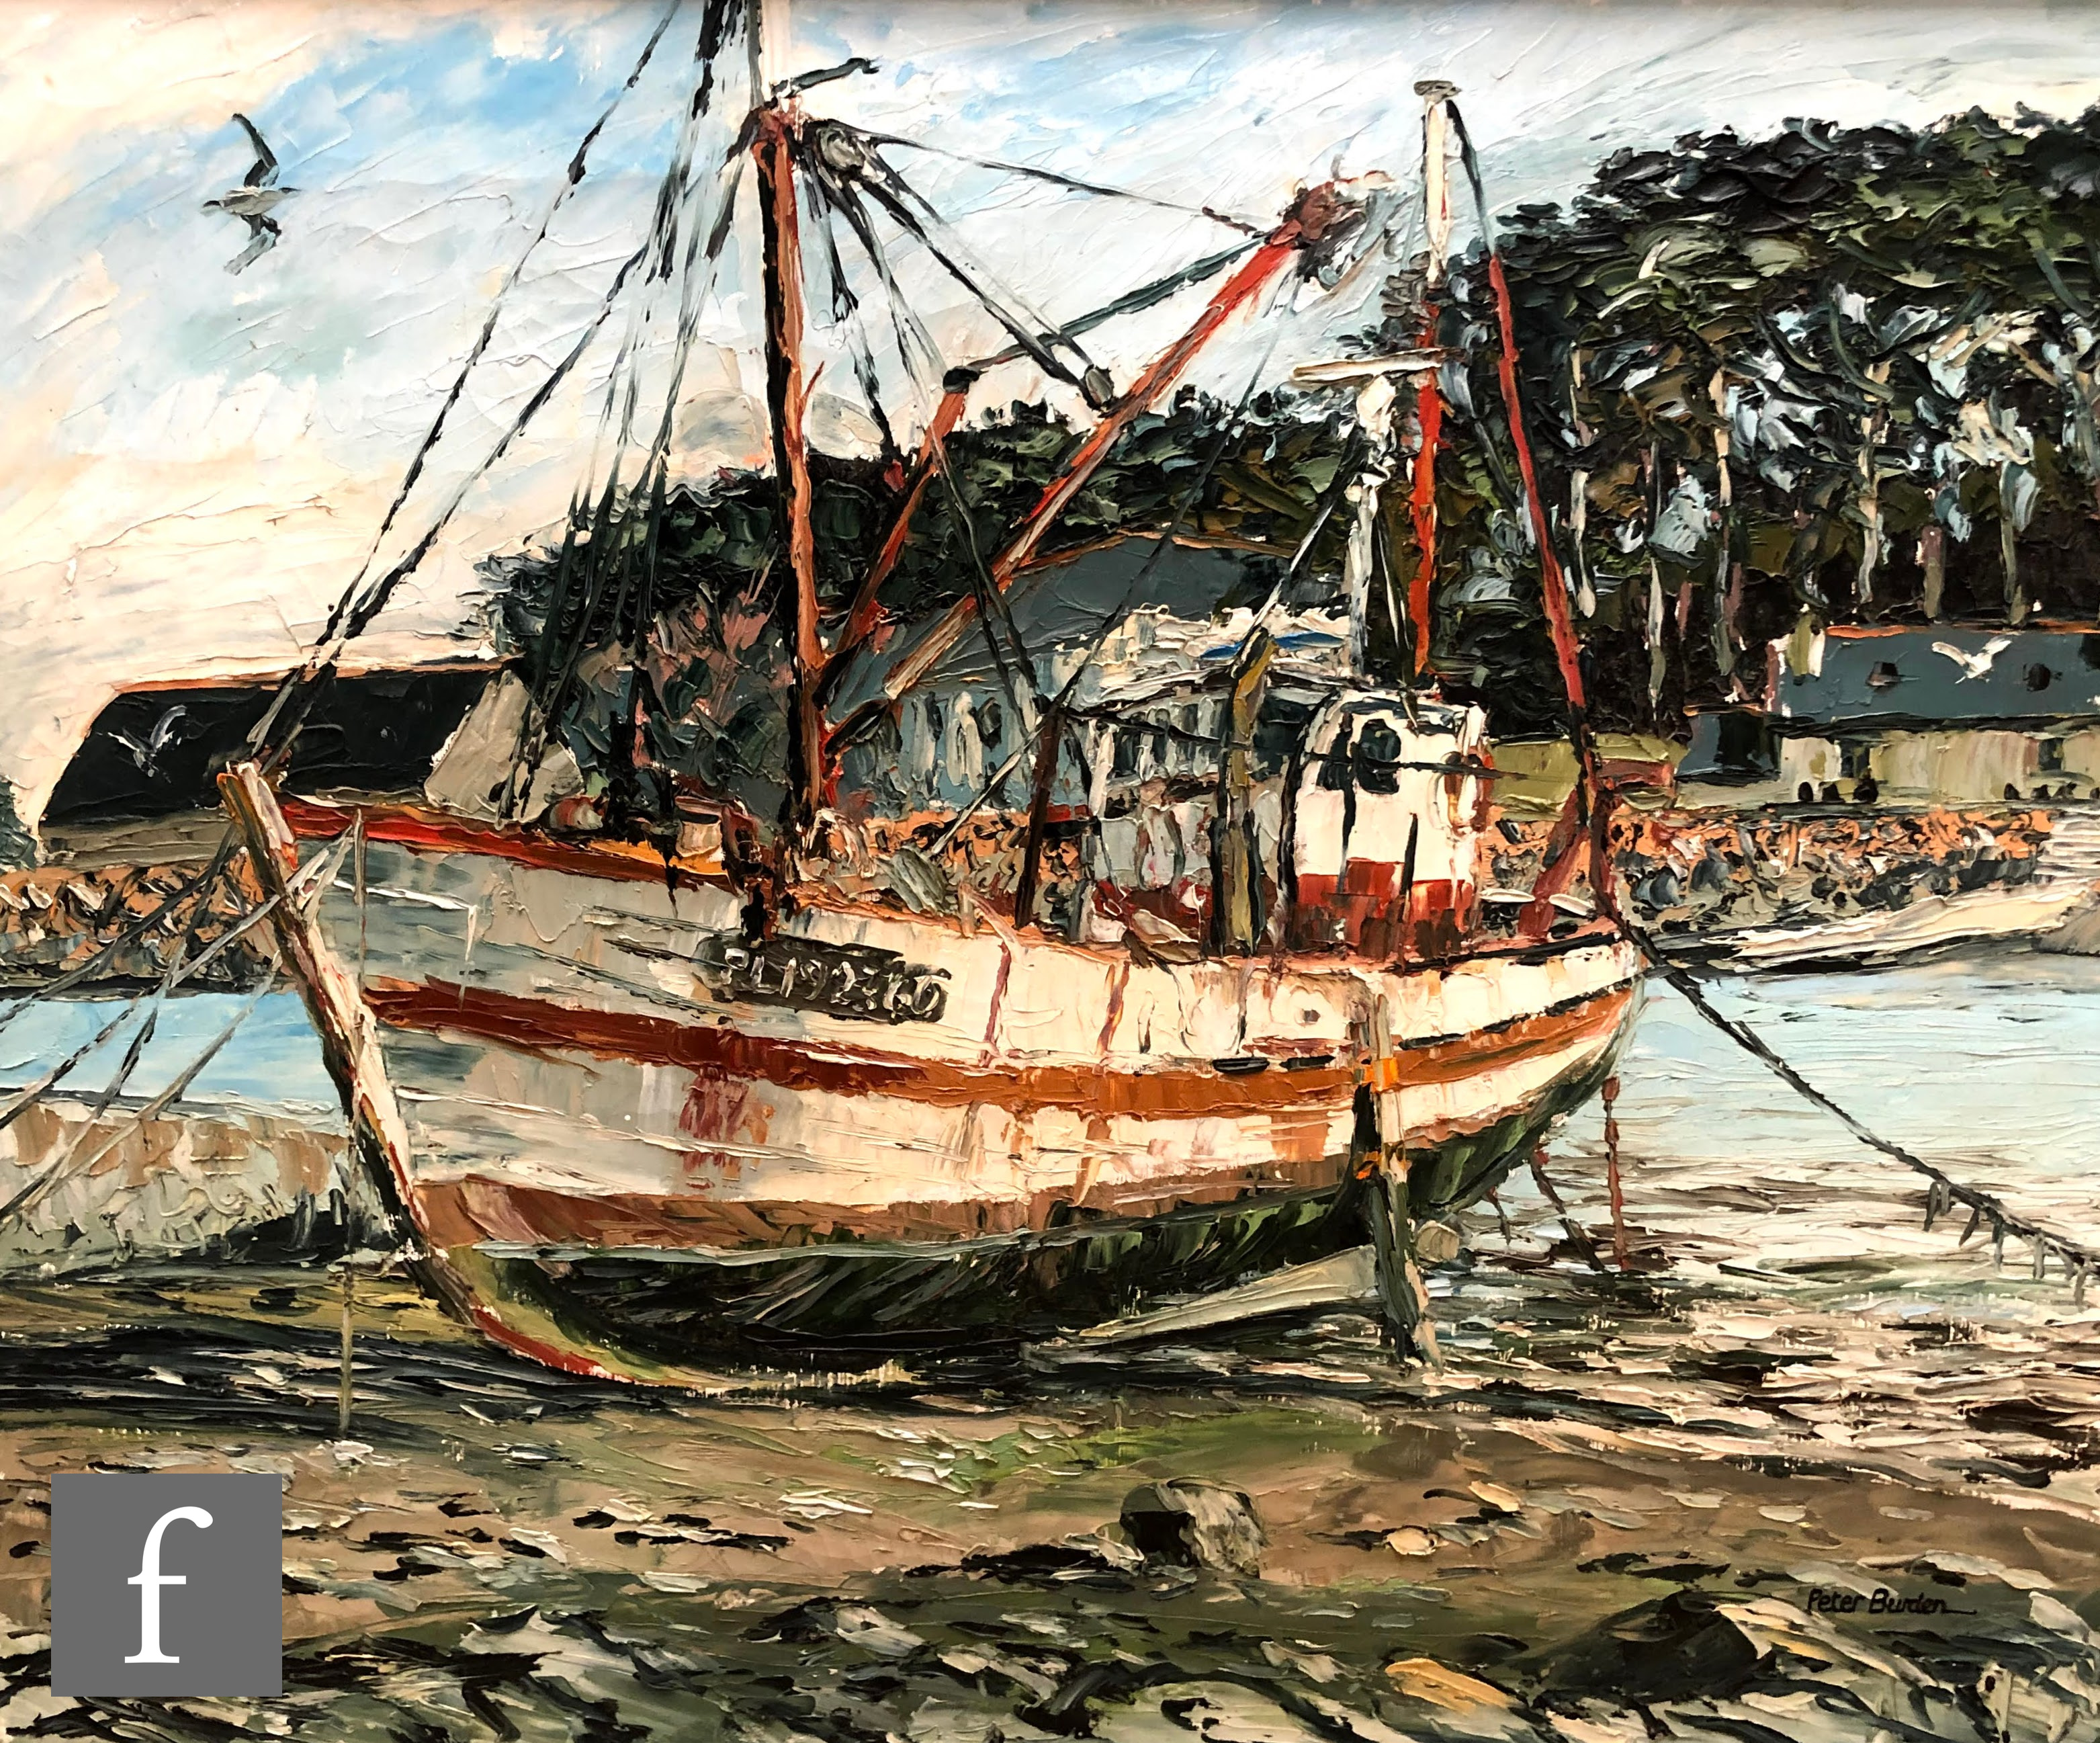 PETER BURDEN (B. 1948) - 'Fishing boat, Port Blanc, Brittany, France', oil on canvas, signed,